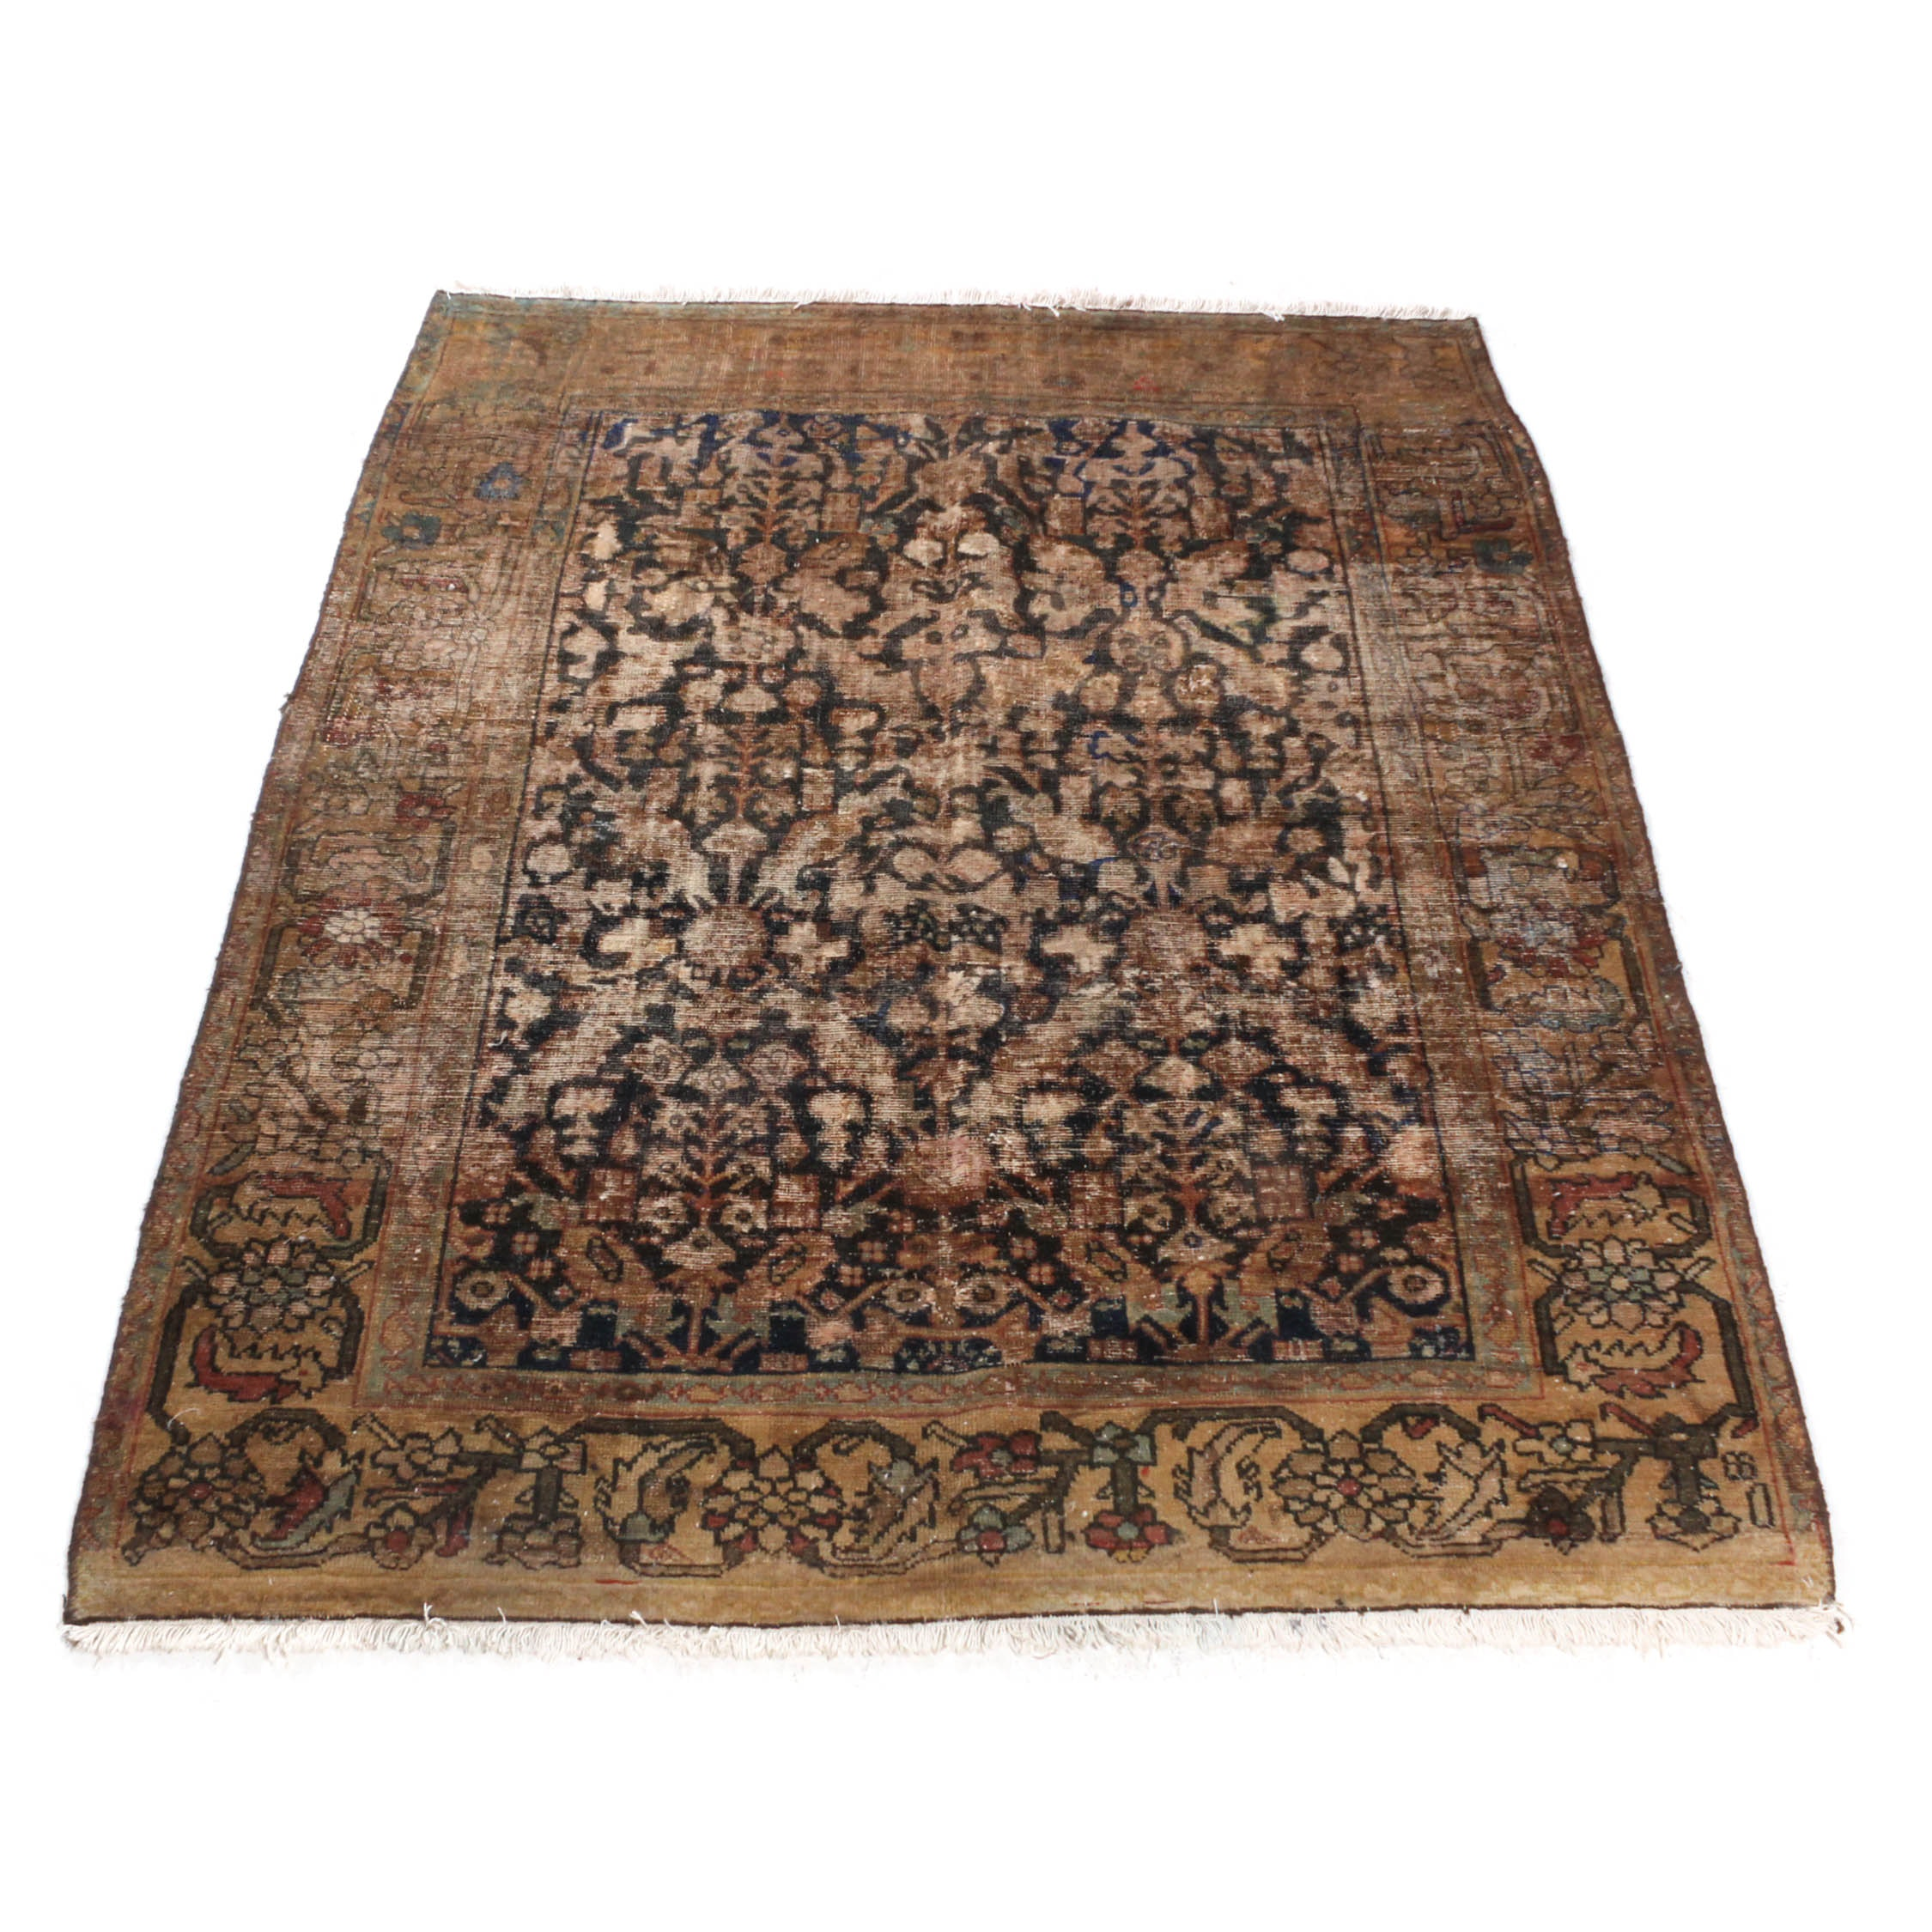 Antique Hand-Knotted Persian Malayer Rug, Circa 1910